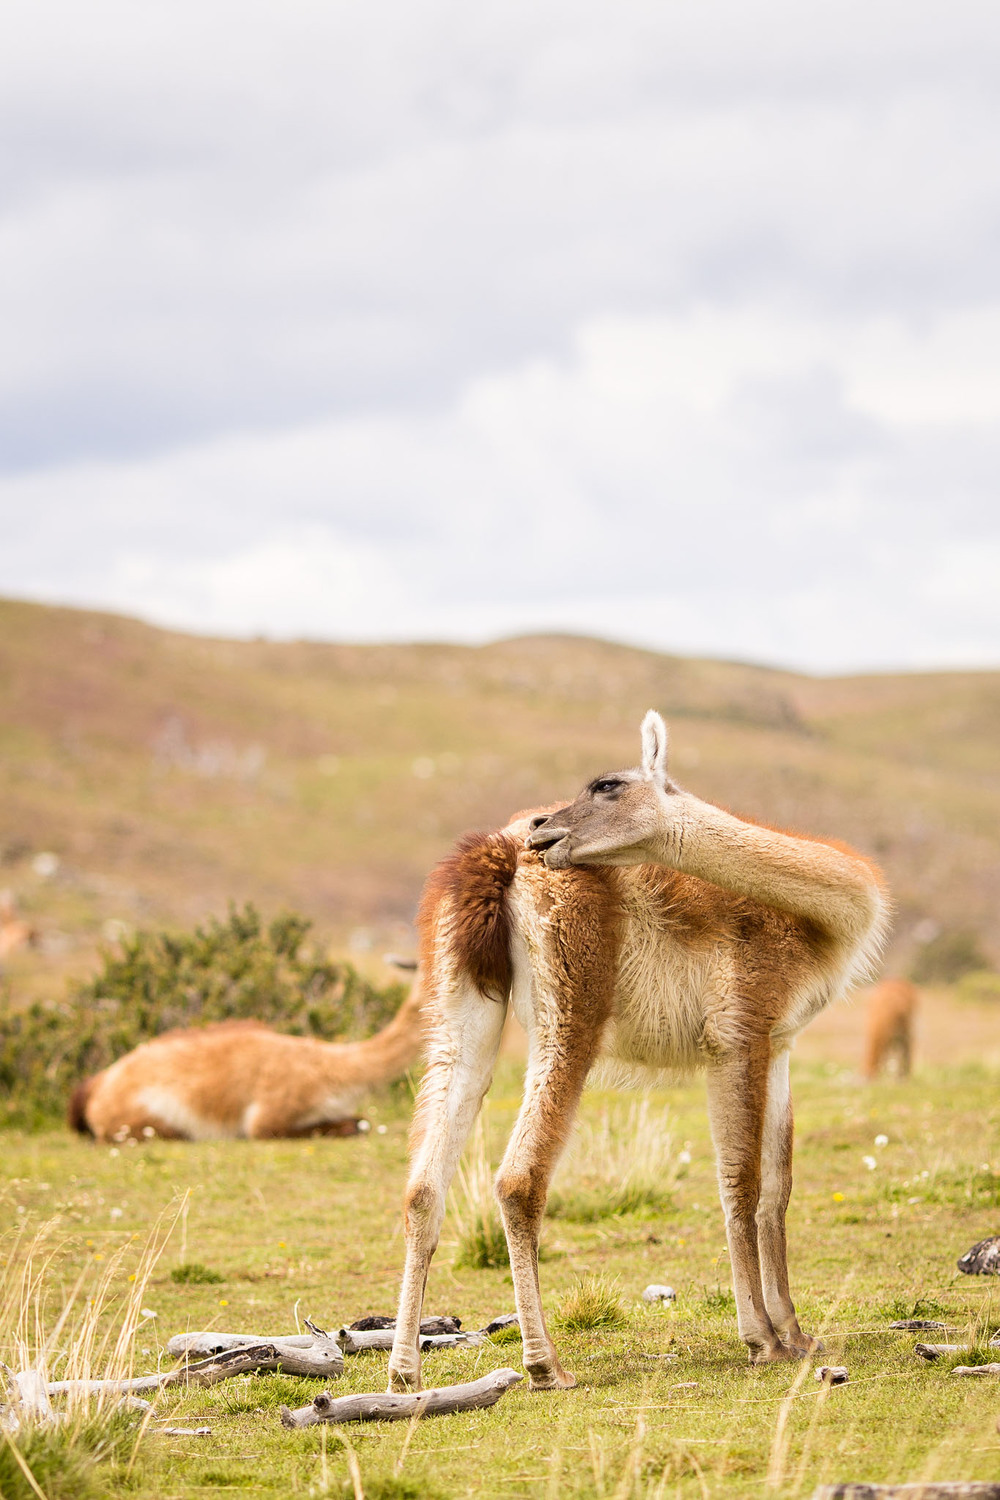 Wedding-Travellers-Overlanding-Destination-Wedding-Chile-Torres-del-Paine-guanaco-lama-llama-tres-torres-cute-funny